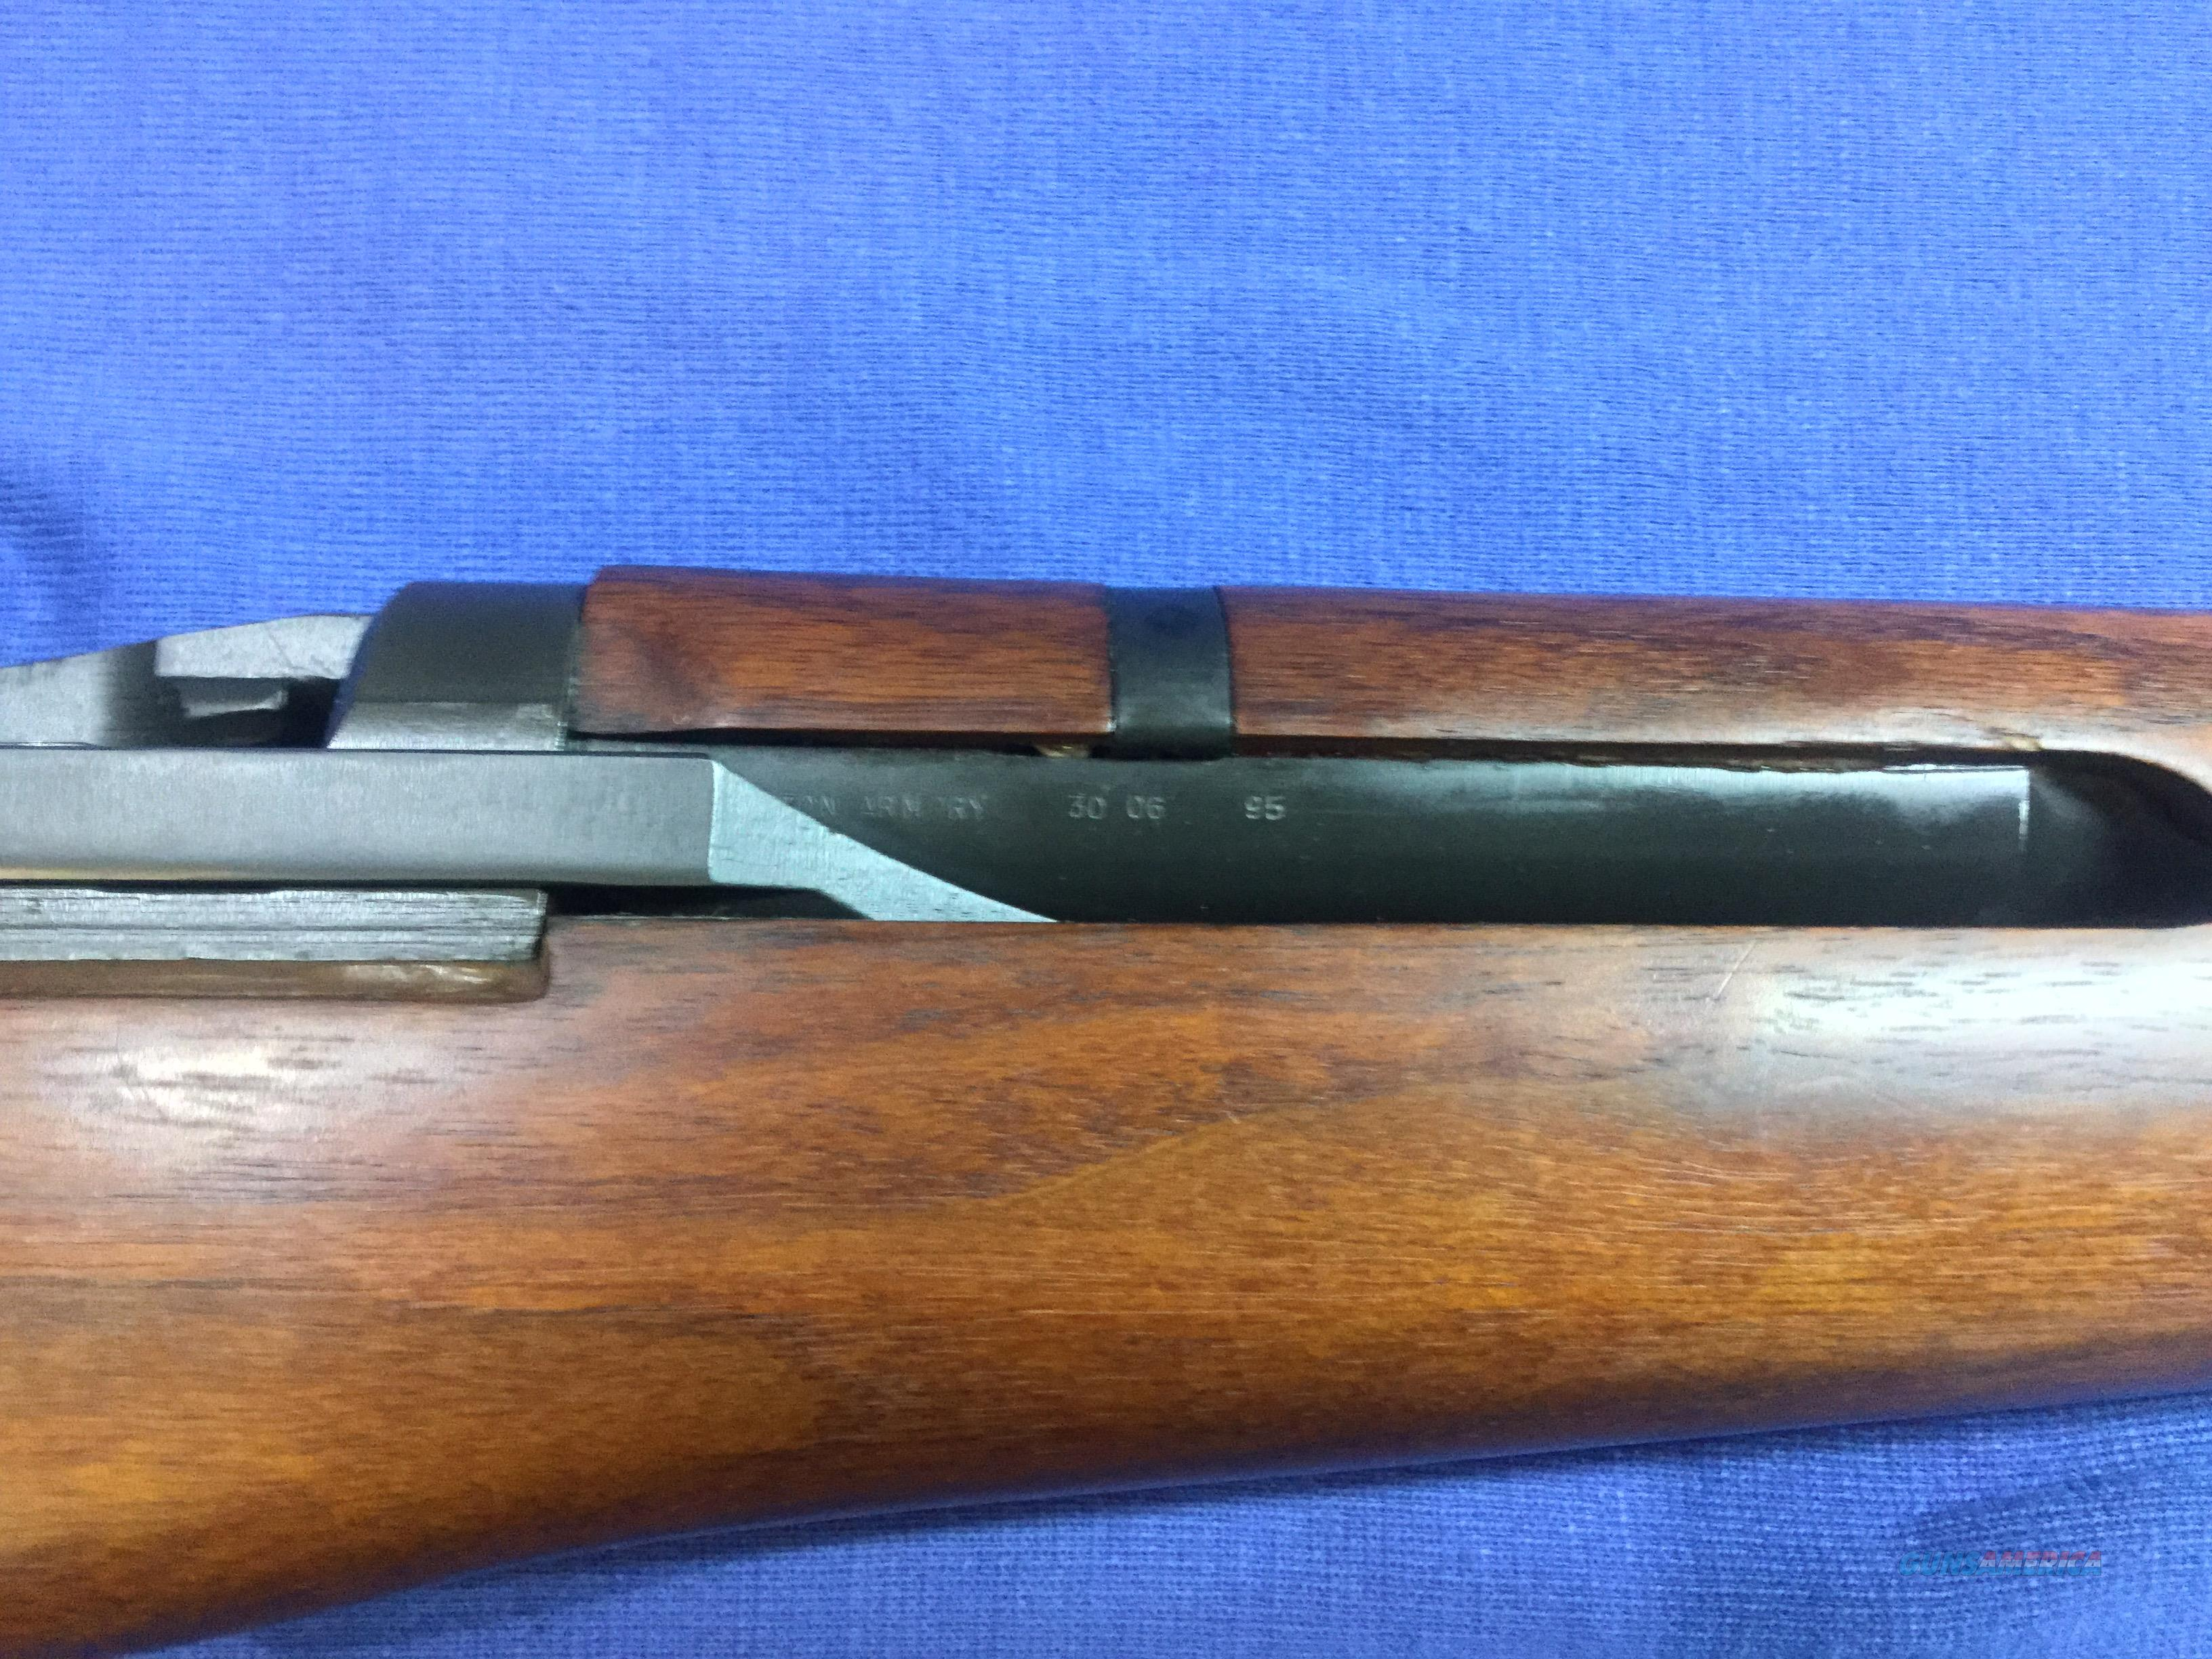 dating springfield m1 garand Brought my new m1 garand home today so far, i know the following: the receiver is a springfield armory m1 garand receiver, manufactured in sept 1944, according to the serial number on.